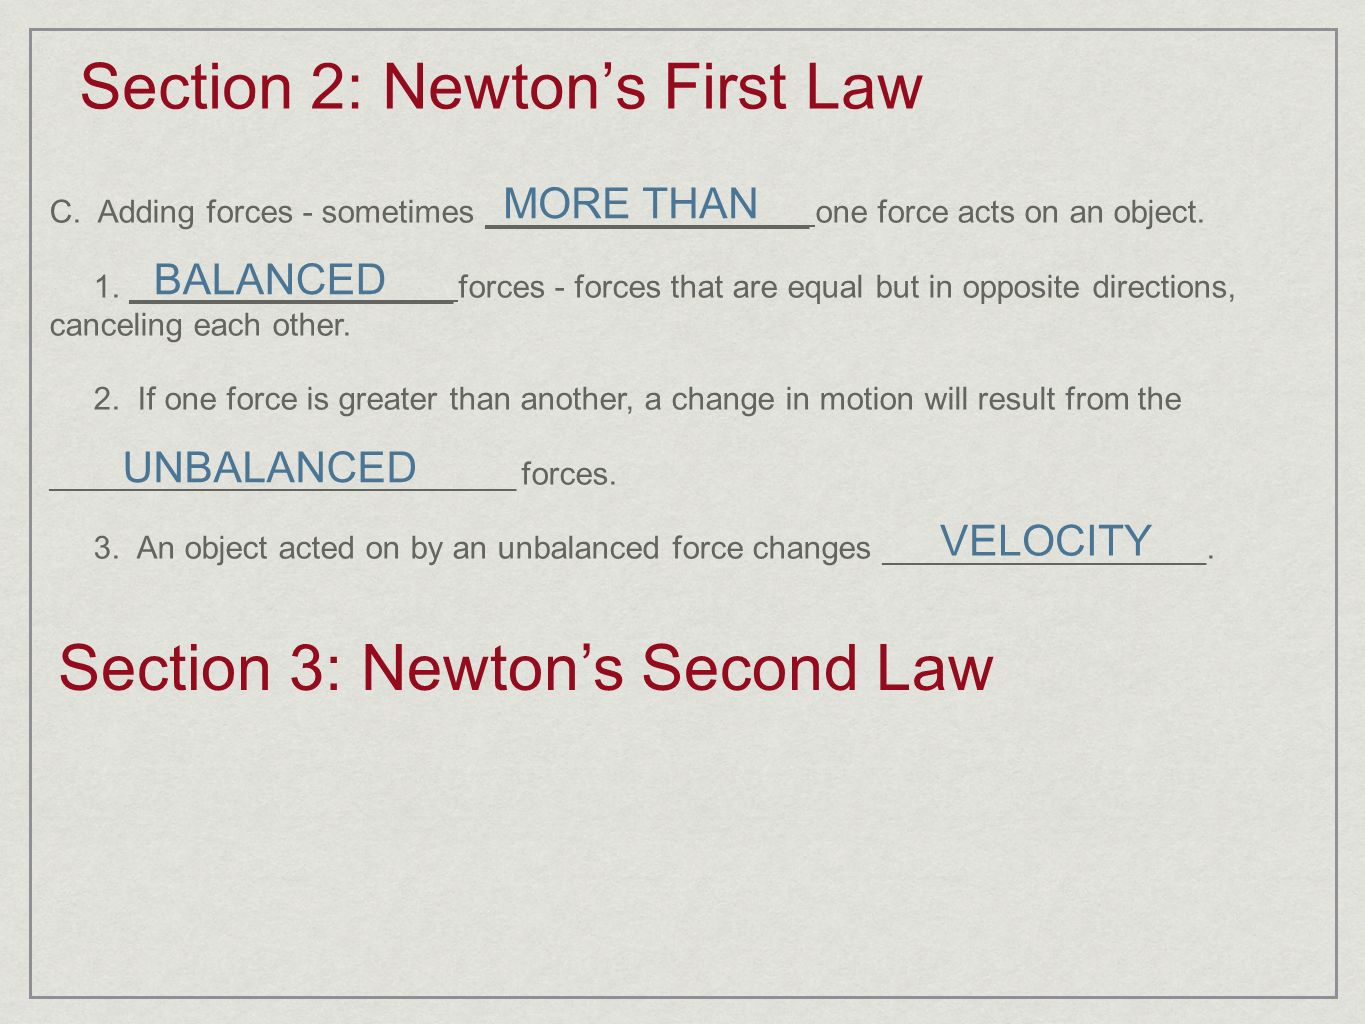 Section 2: Newton's First Law